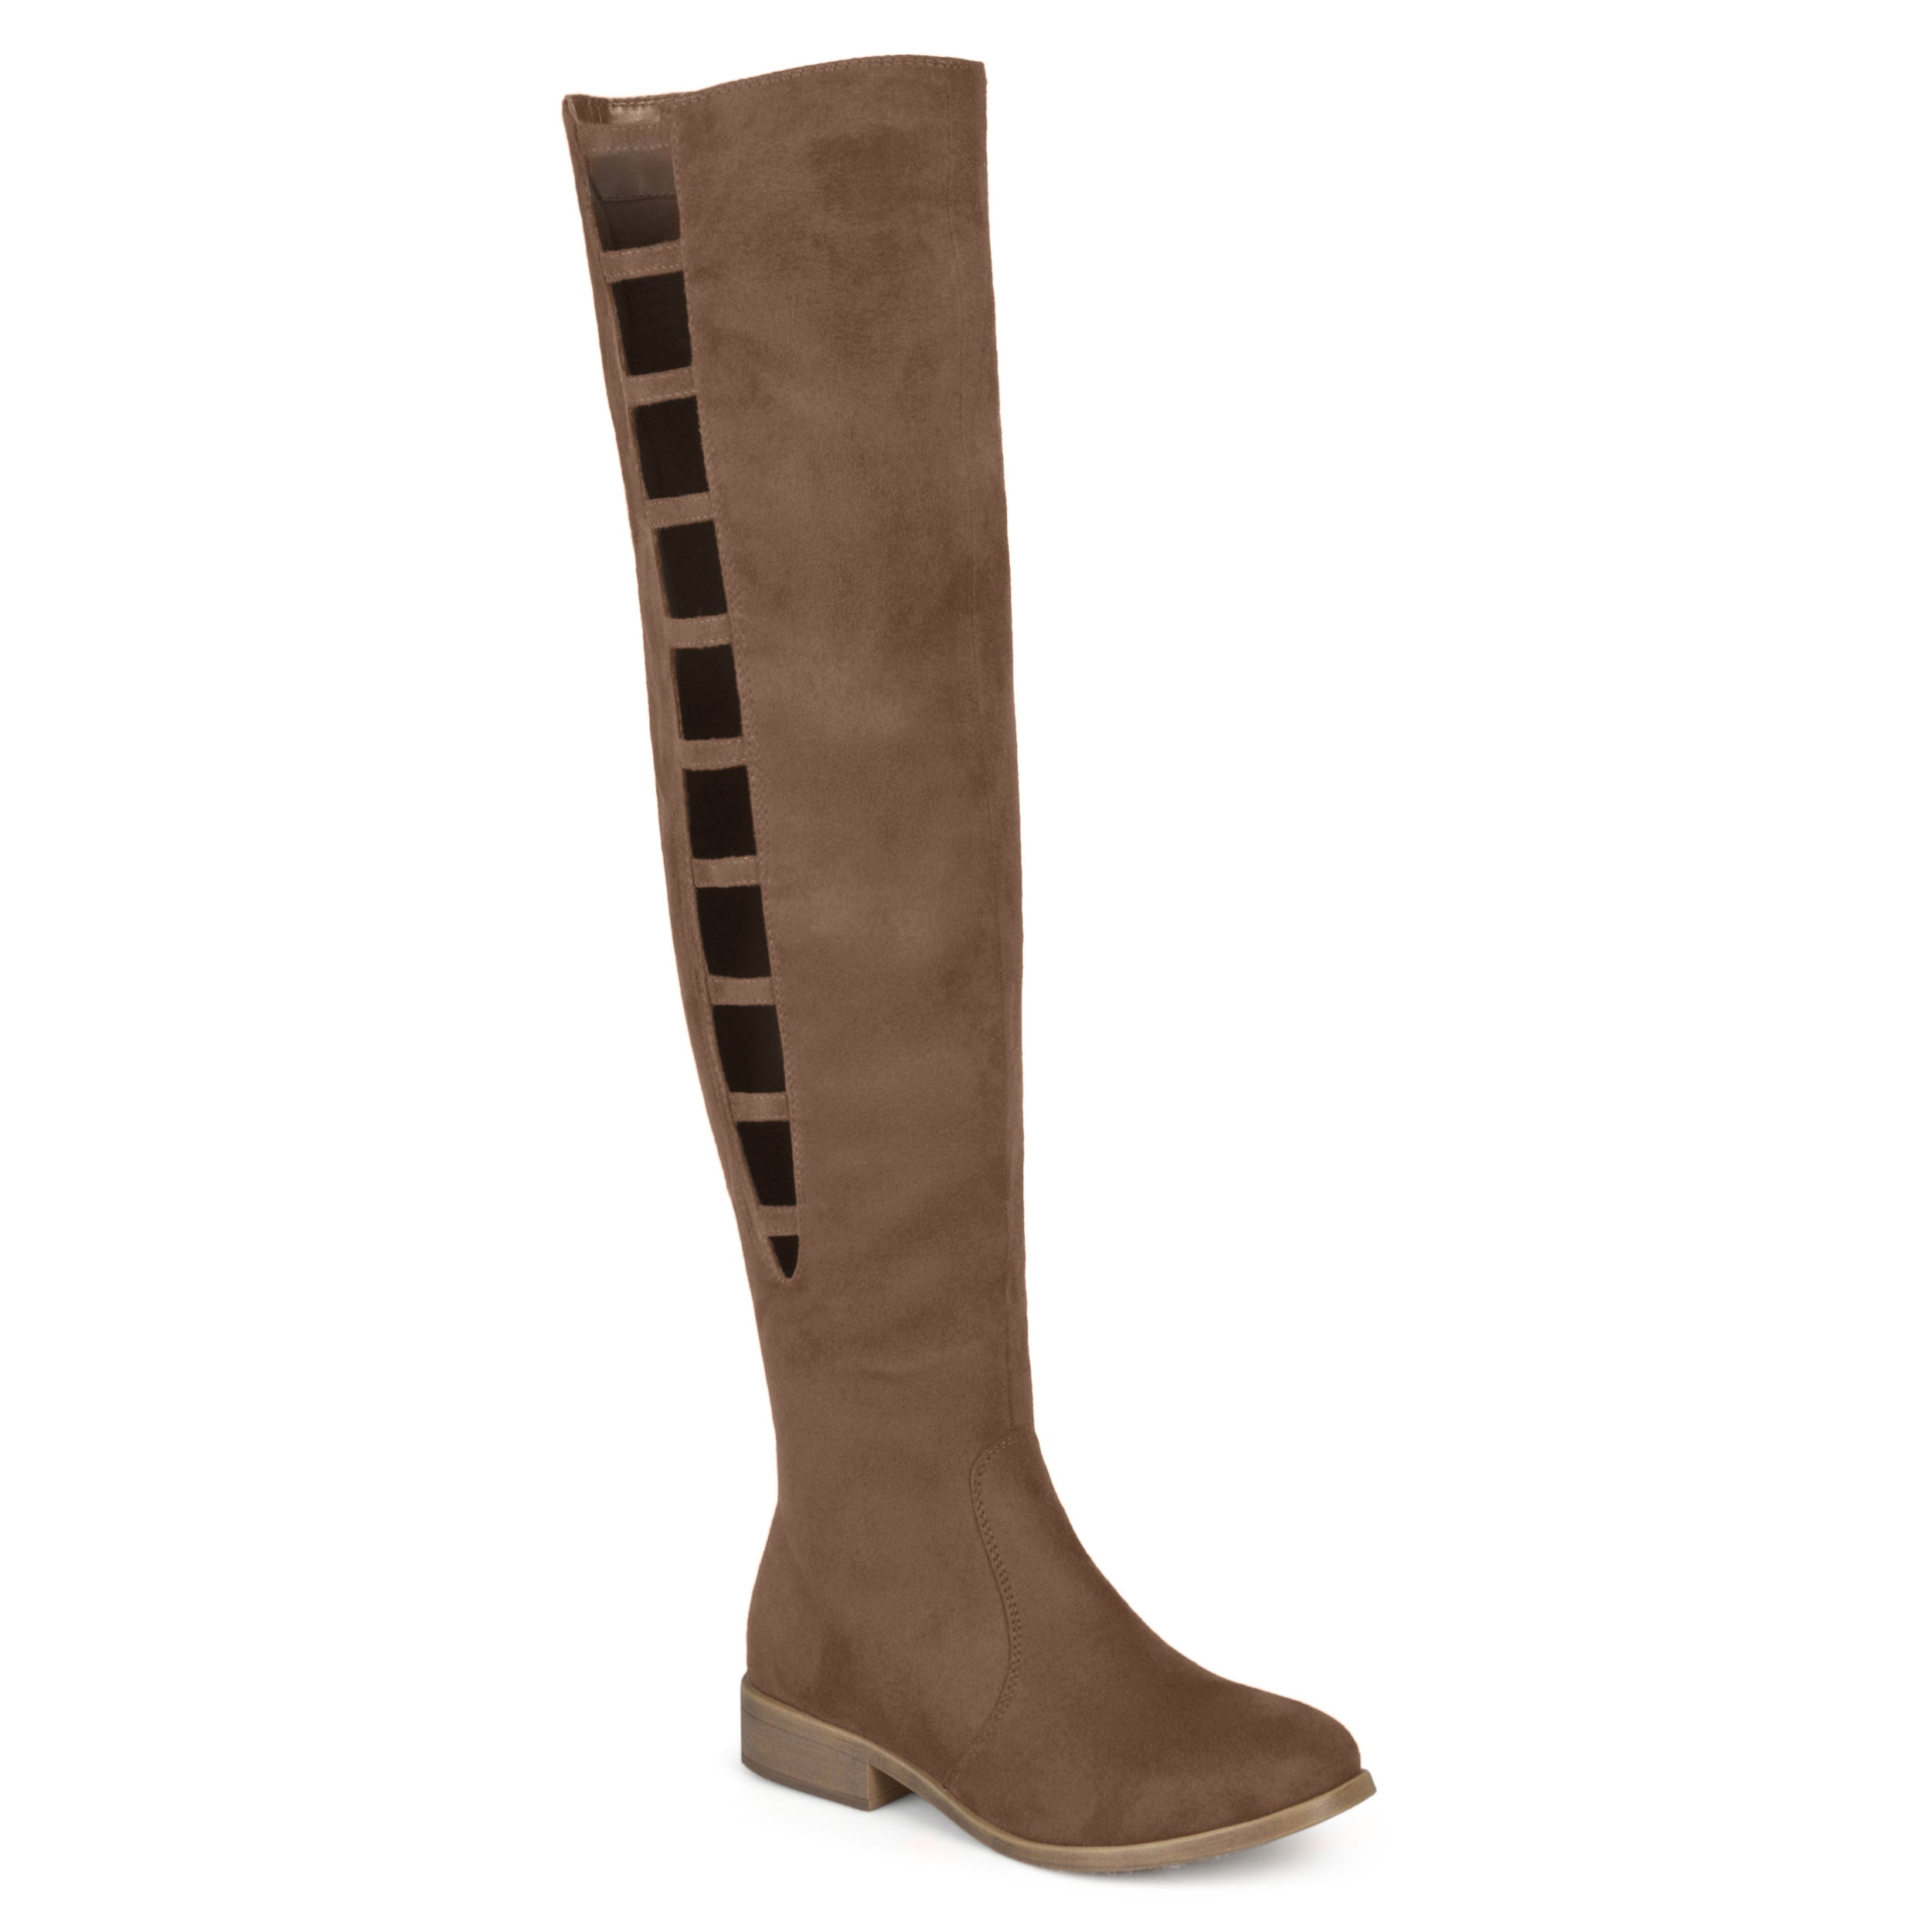 2658919d018 Shop Journee Collection Women s  Pitch  Regular and Wide Calf Boots - Free  Shipping Today - Overstock - 16518853